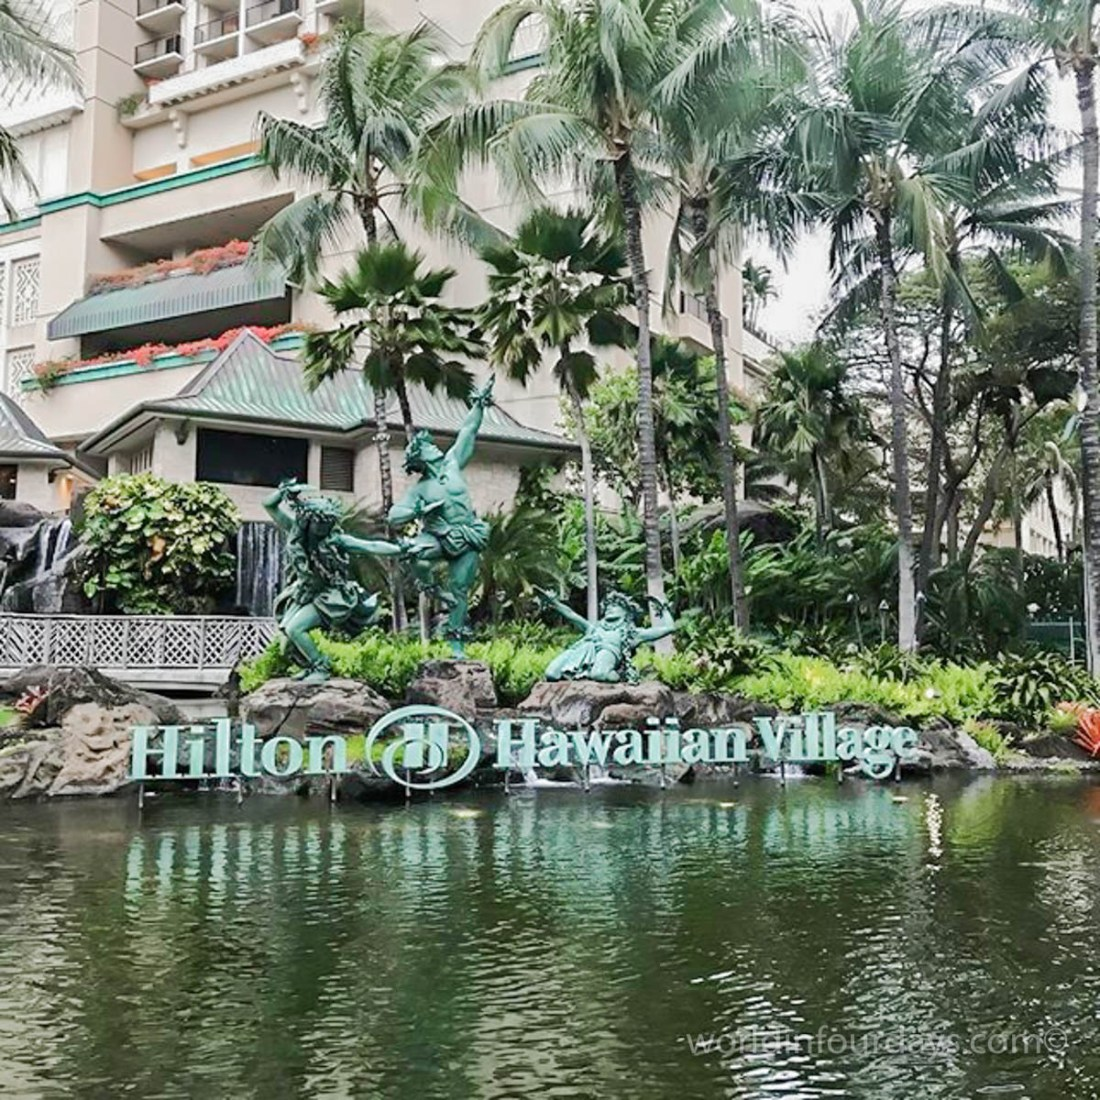 Hilton Hawaiian village best tower